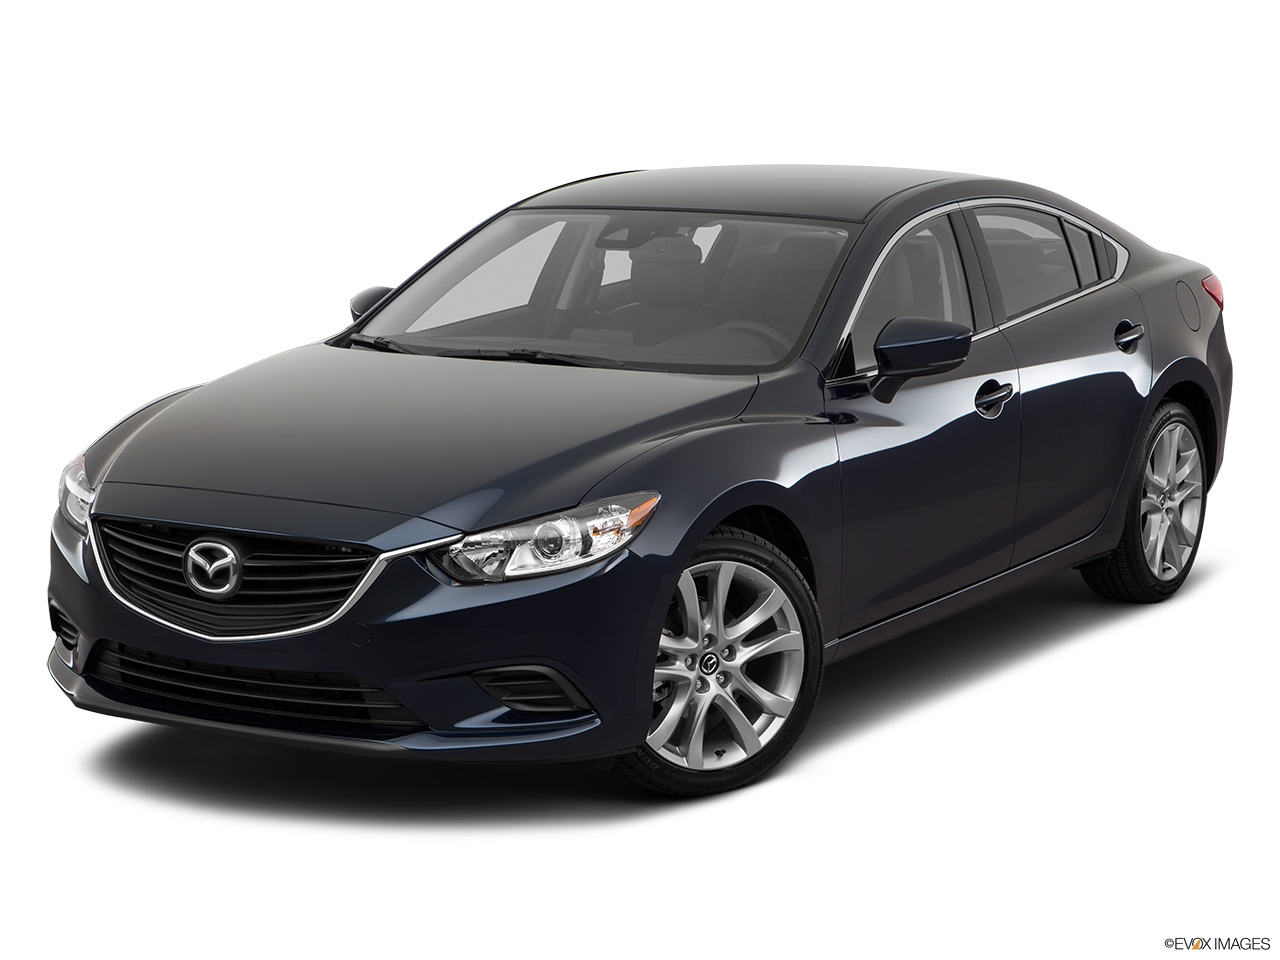 2018 mazda 6 prices in saudi arabia gulf specs reviews for riyadh jeddah dammam and khobar. Black Bedroom Furniture Sets. Home Design Ideas